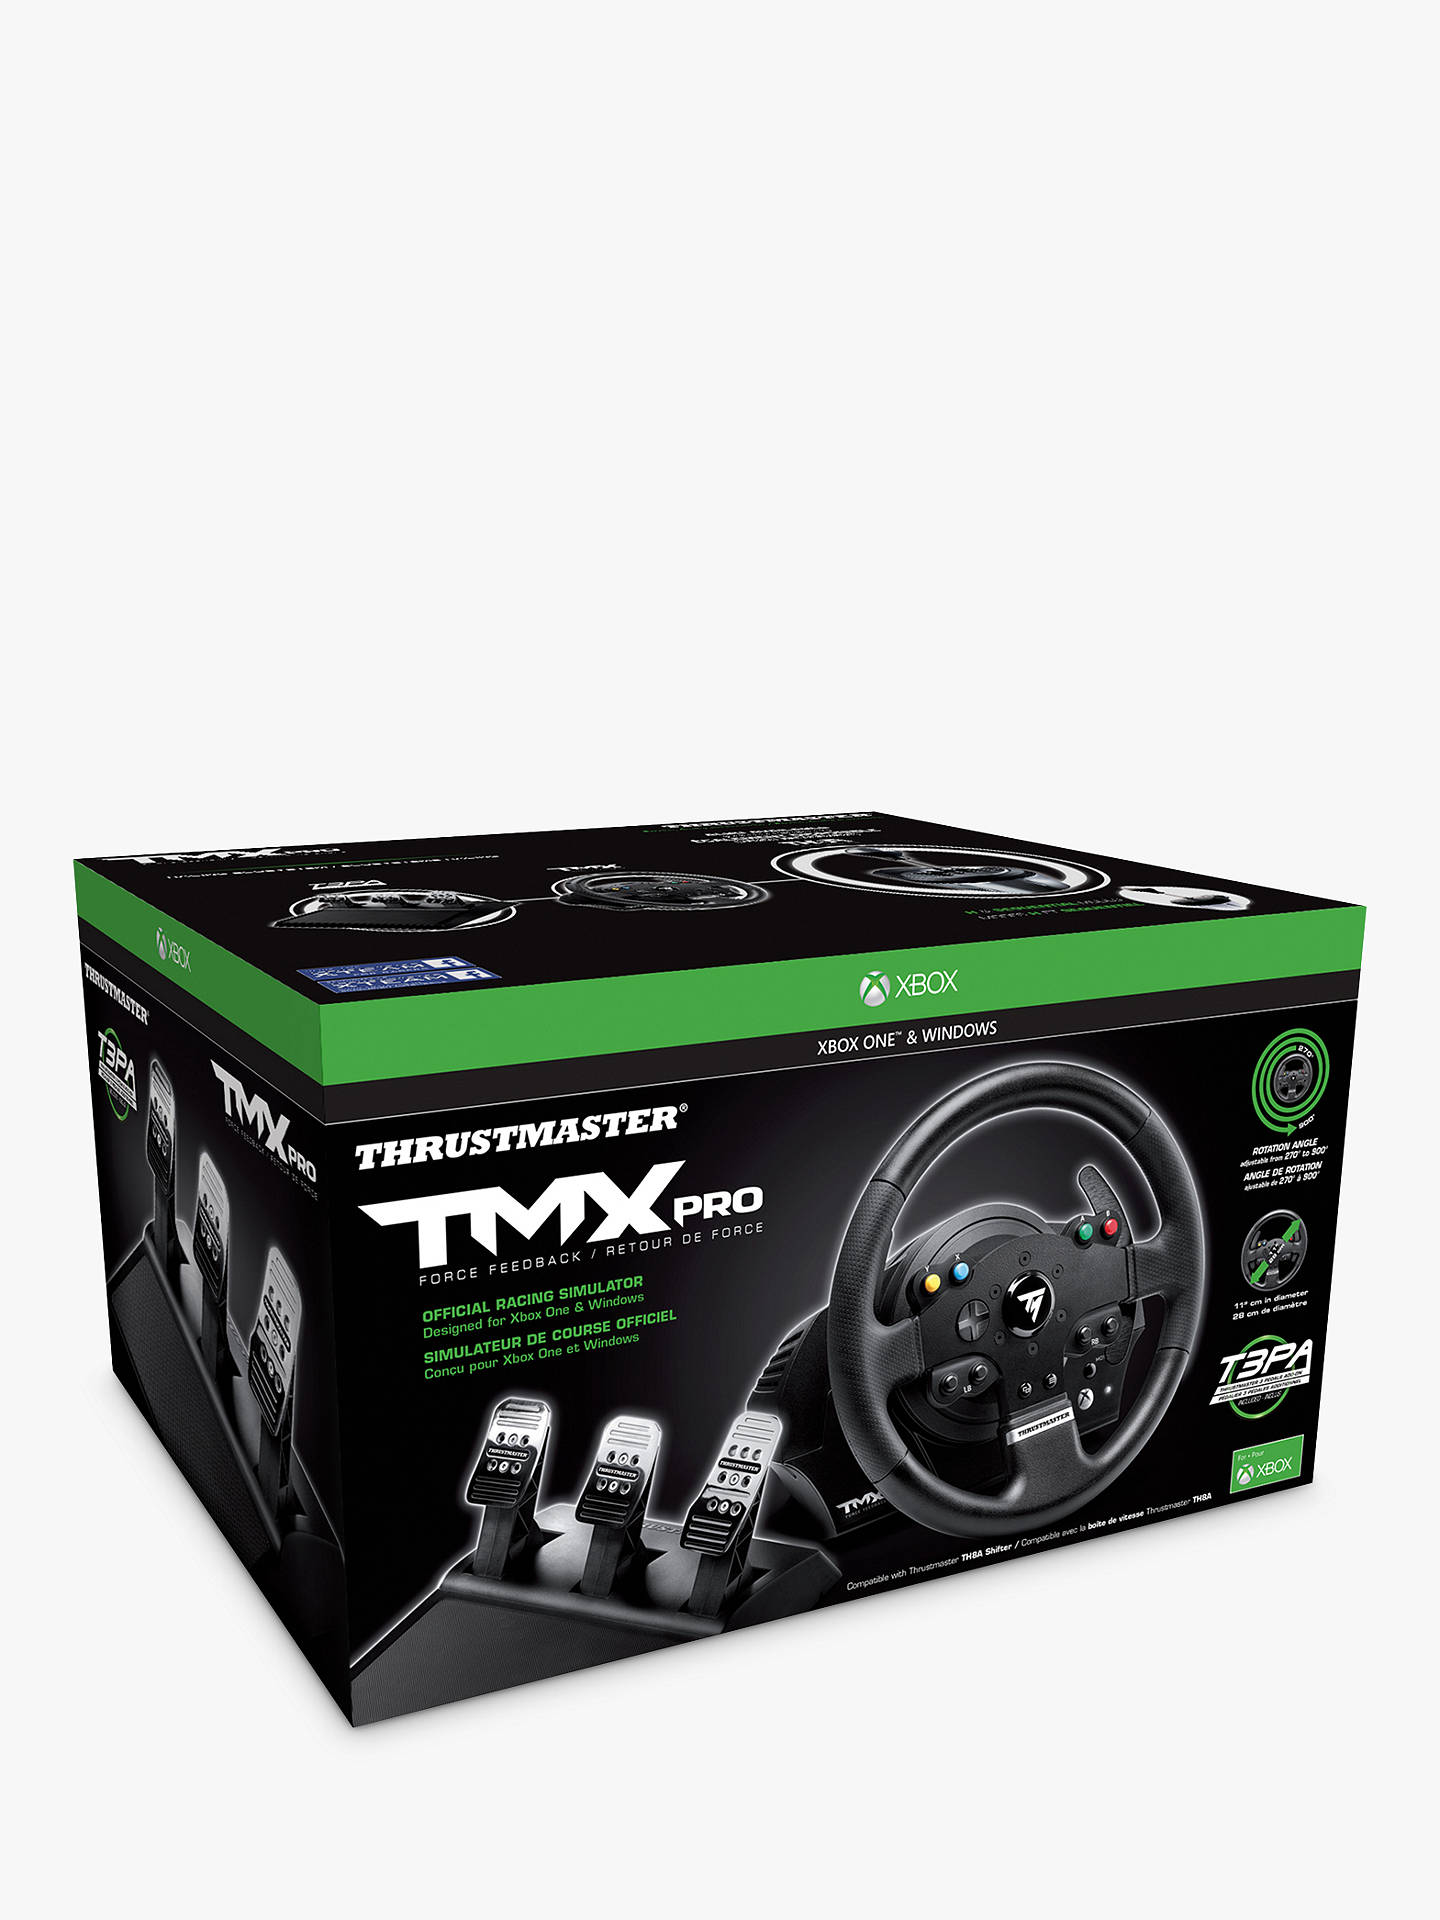 Thrustmaster TMX Pro, Force Feedback Gaming Wheel for PC and Xbox One, Black